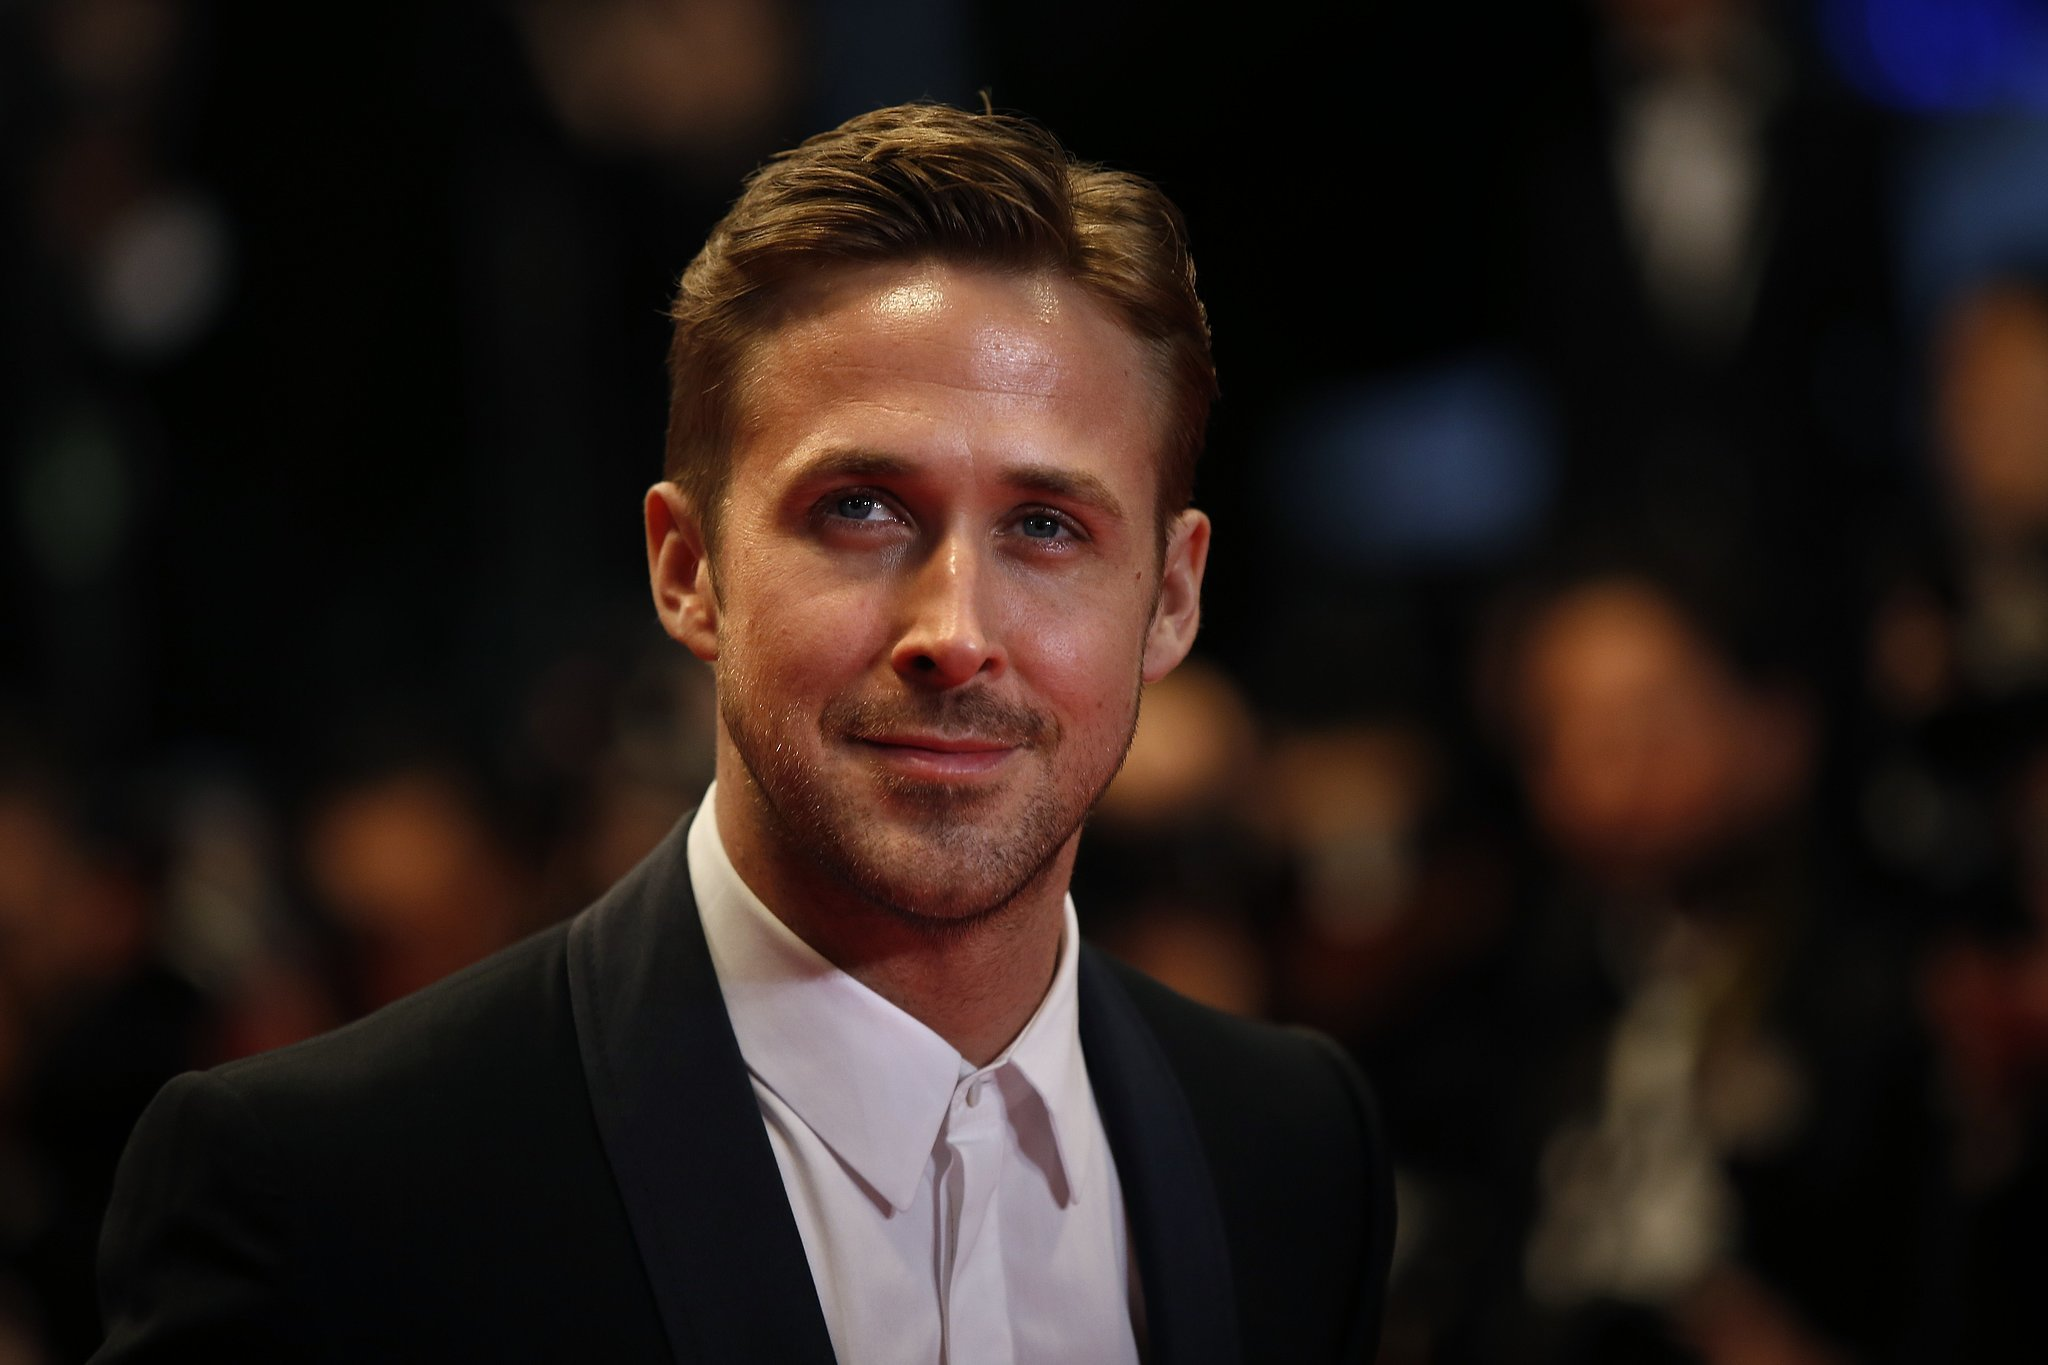 Ryan Gosling Wants Cruel Cattle Dehorning Phased Out | PETA